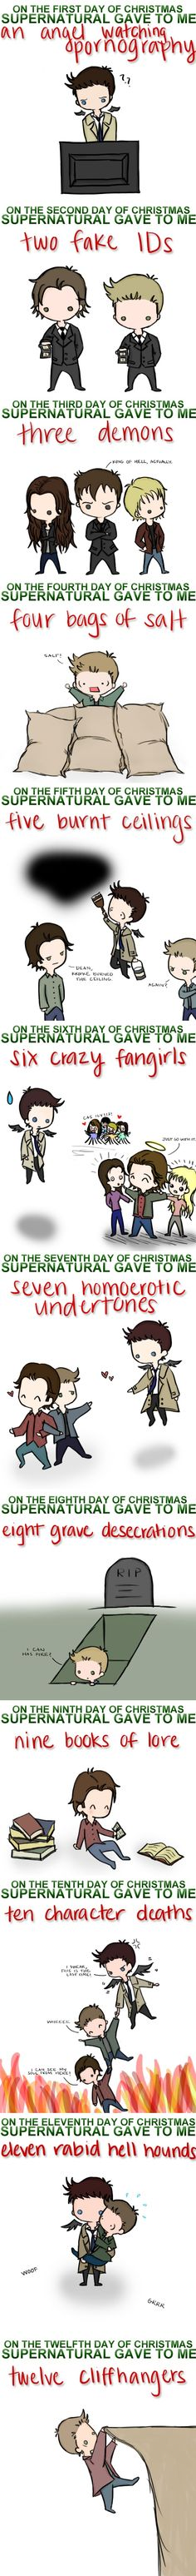 """Twelve Days of Supernatural Christmas. I'm repinning solely for the drawings that go with it. Especially the 10 character deaths one! Lol """"I can see my soul from here!"""""""